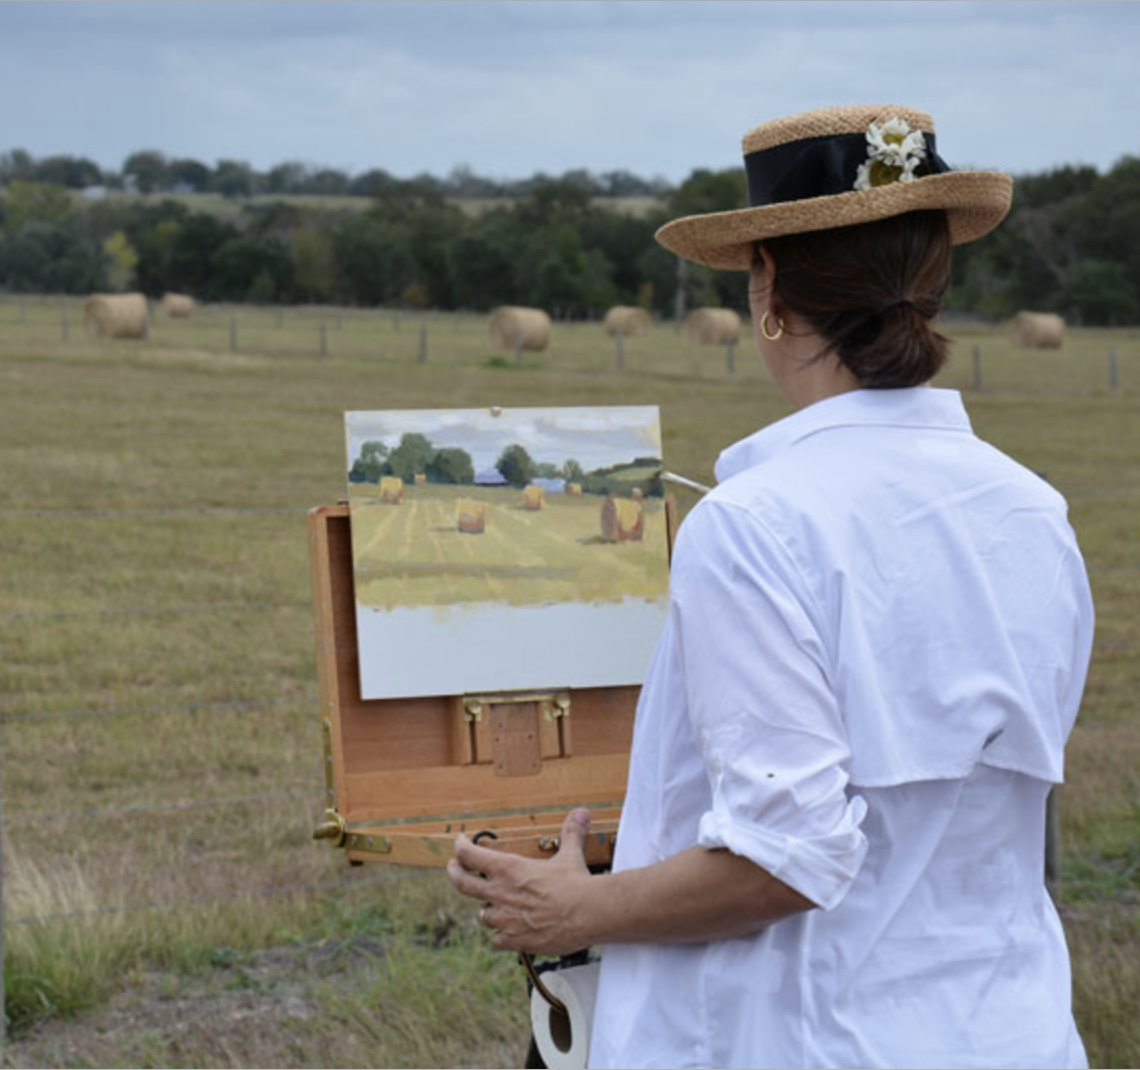 How to prepare for plein air painting